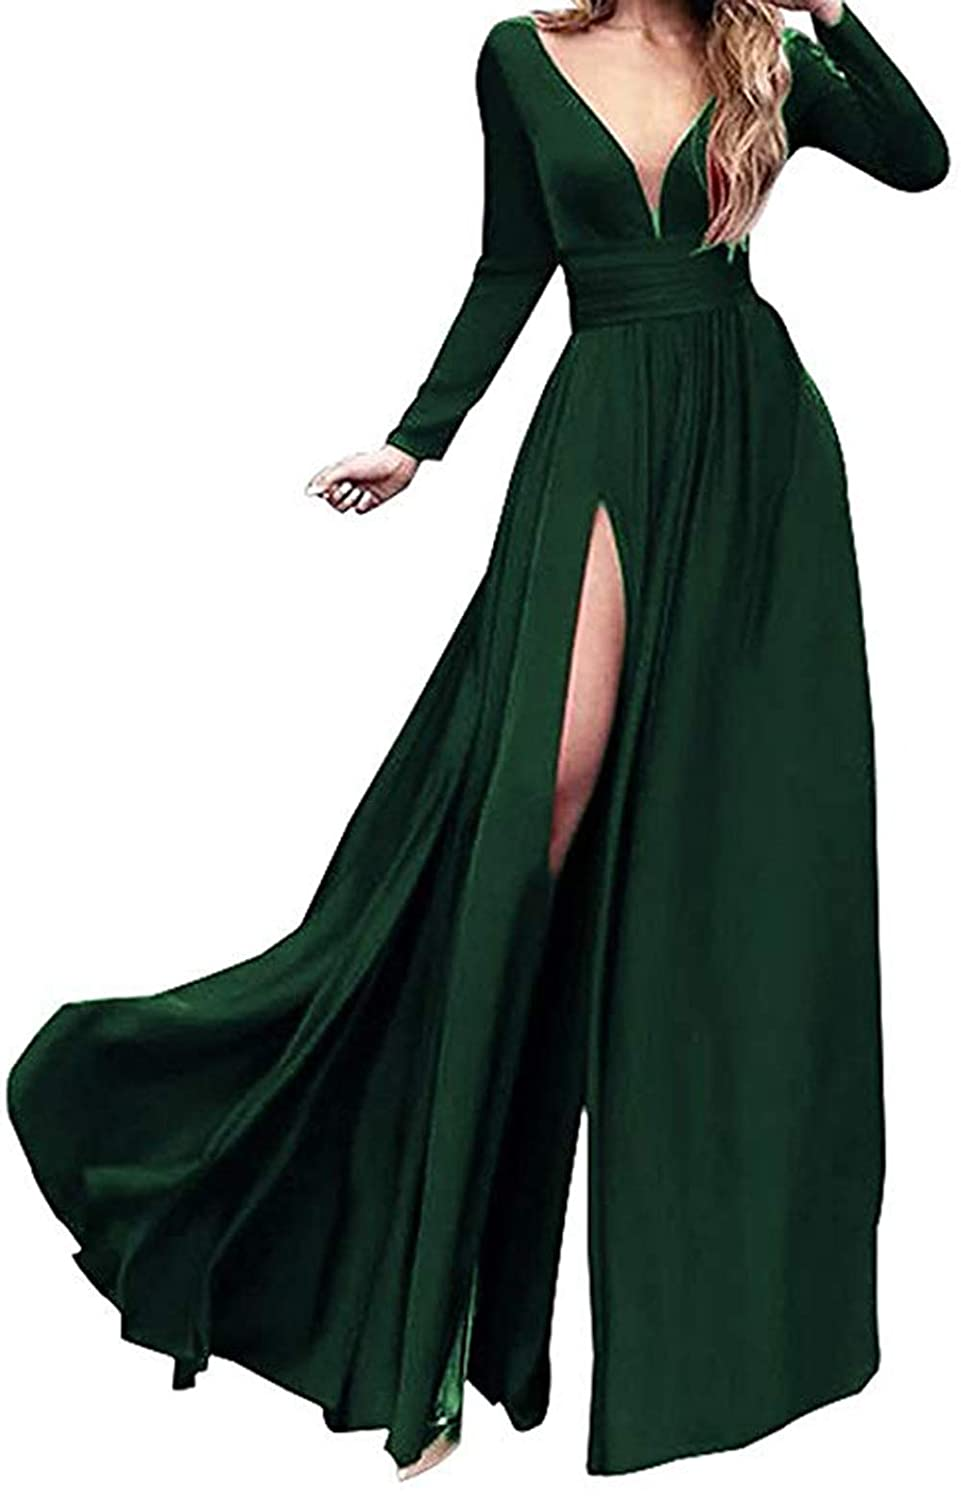 Dark Green Ri Yun Women's Double VNeck Long Sleeve Prom Dresses Long 2019 Side Slit Formal Evening Ball Gowns